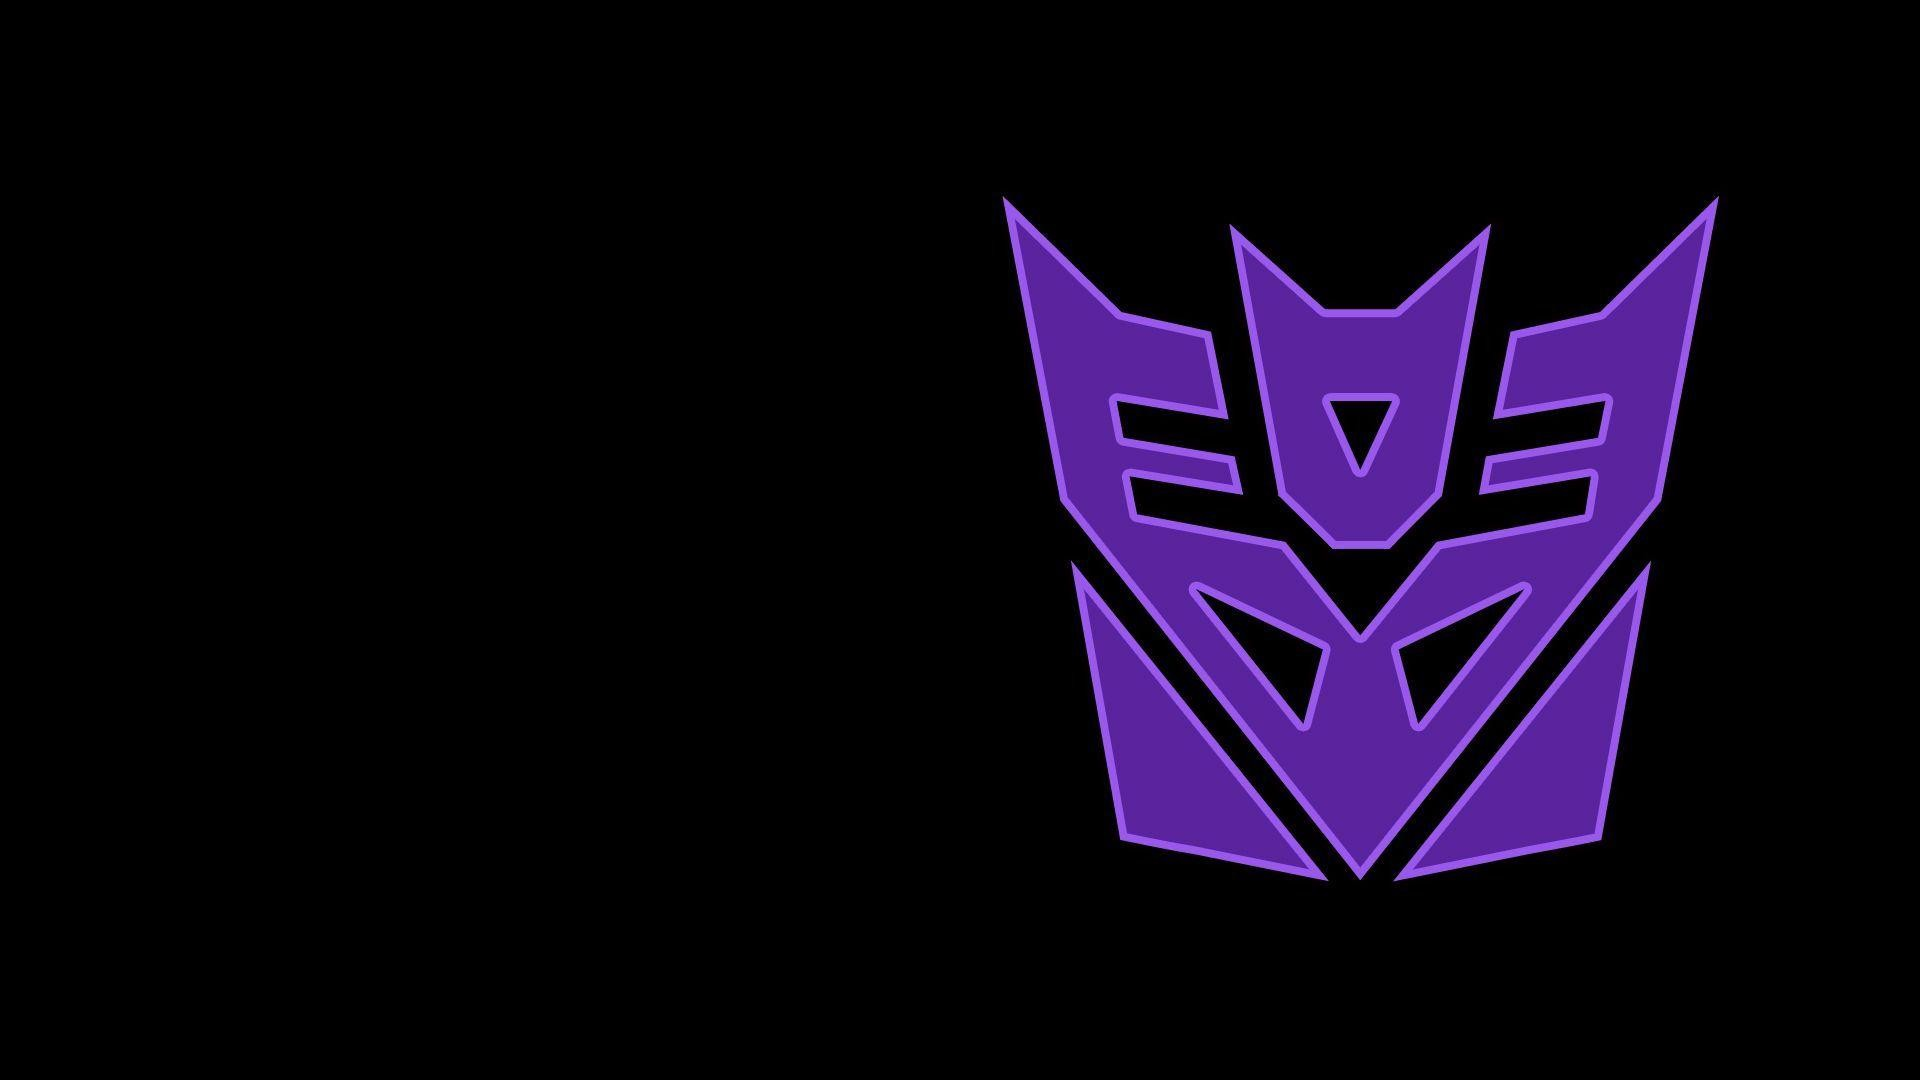 1920x1080 Decepticon Logo Wallpapers - Wallpaper Cave